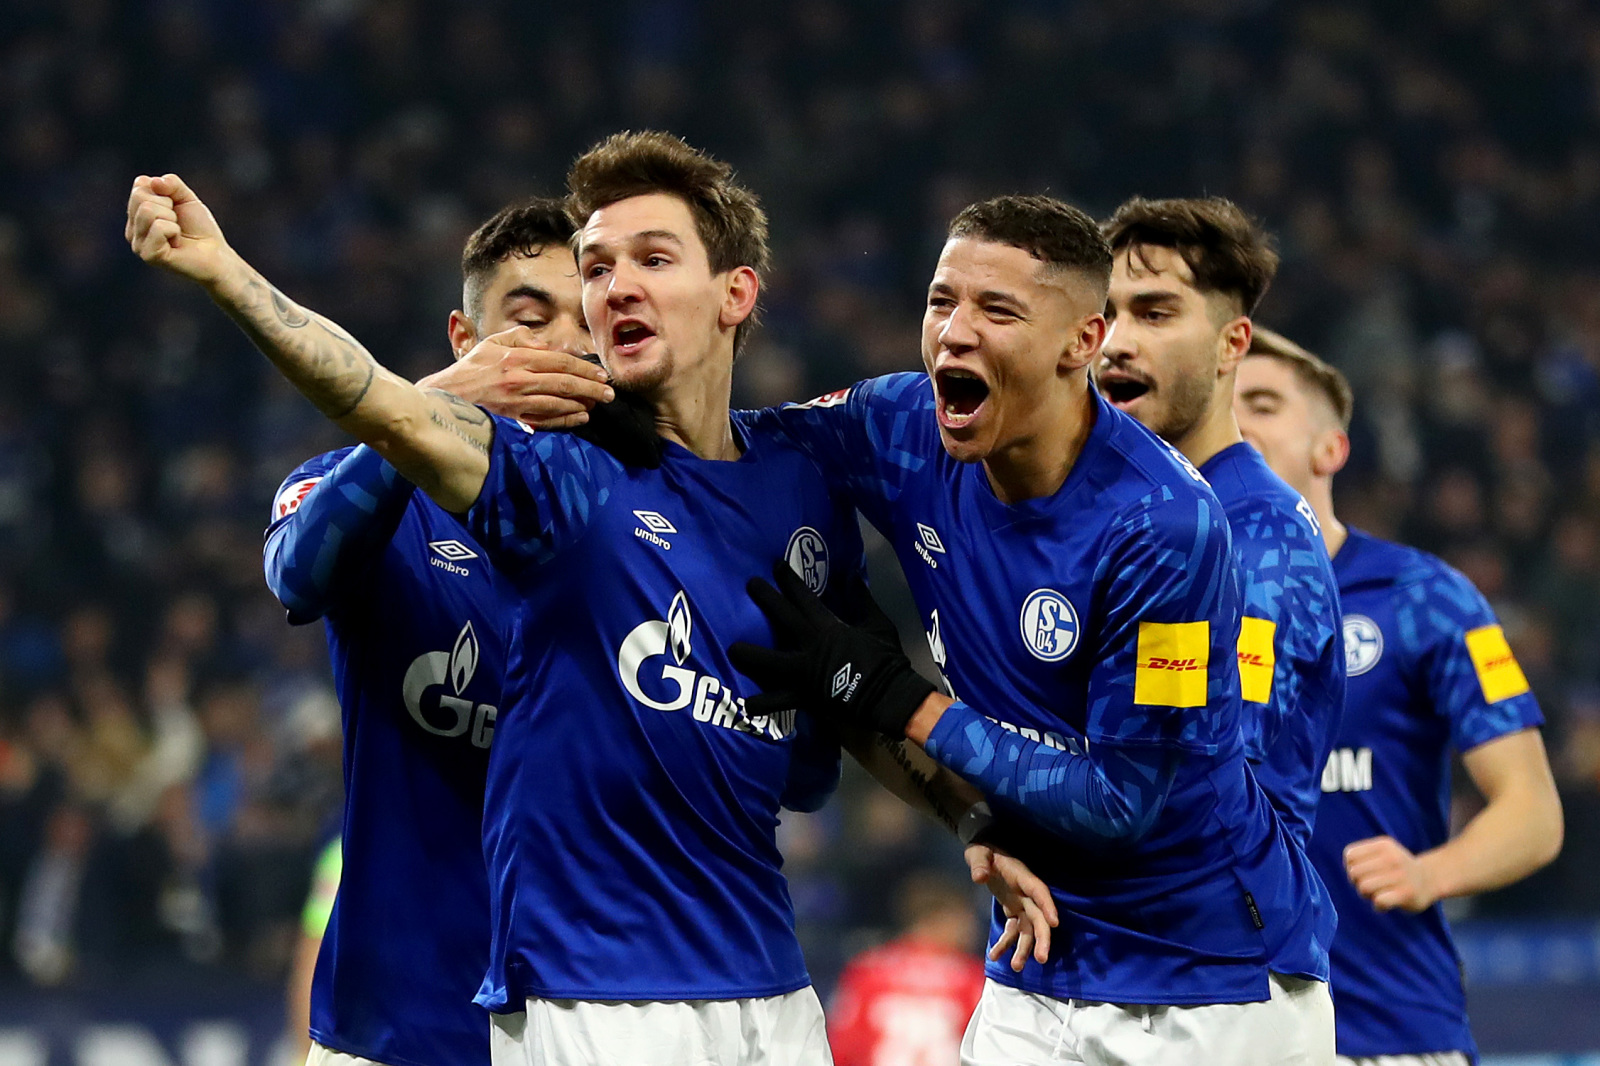 Schalke: 3 key players to overcoming FC Koln and getting back on track